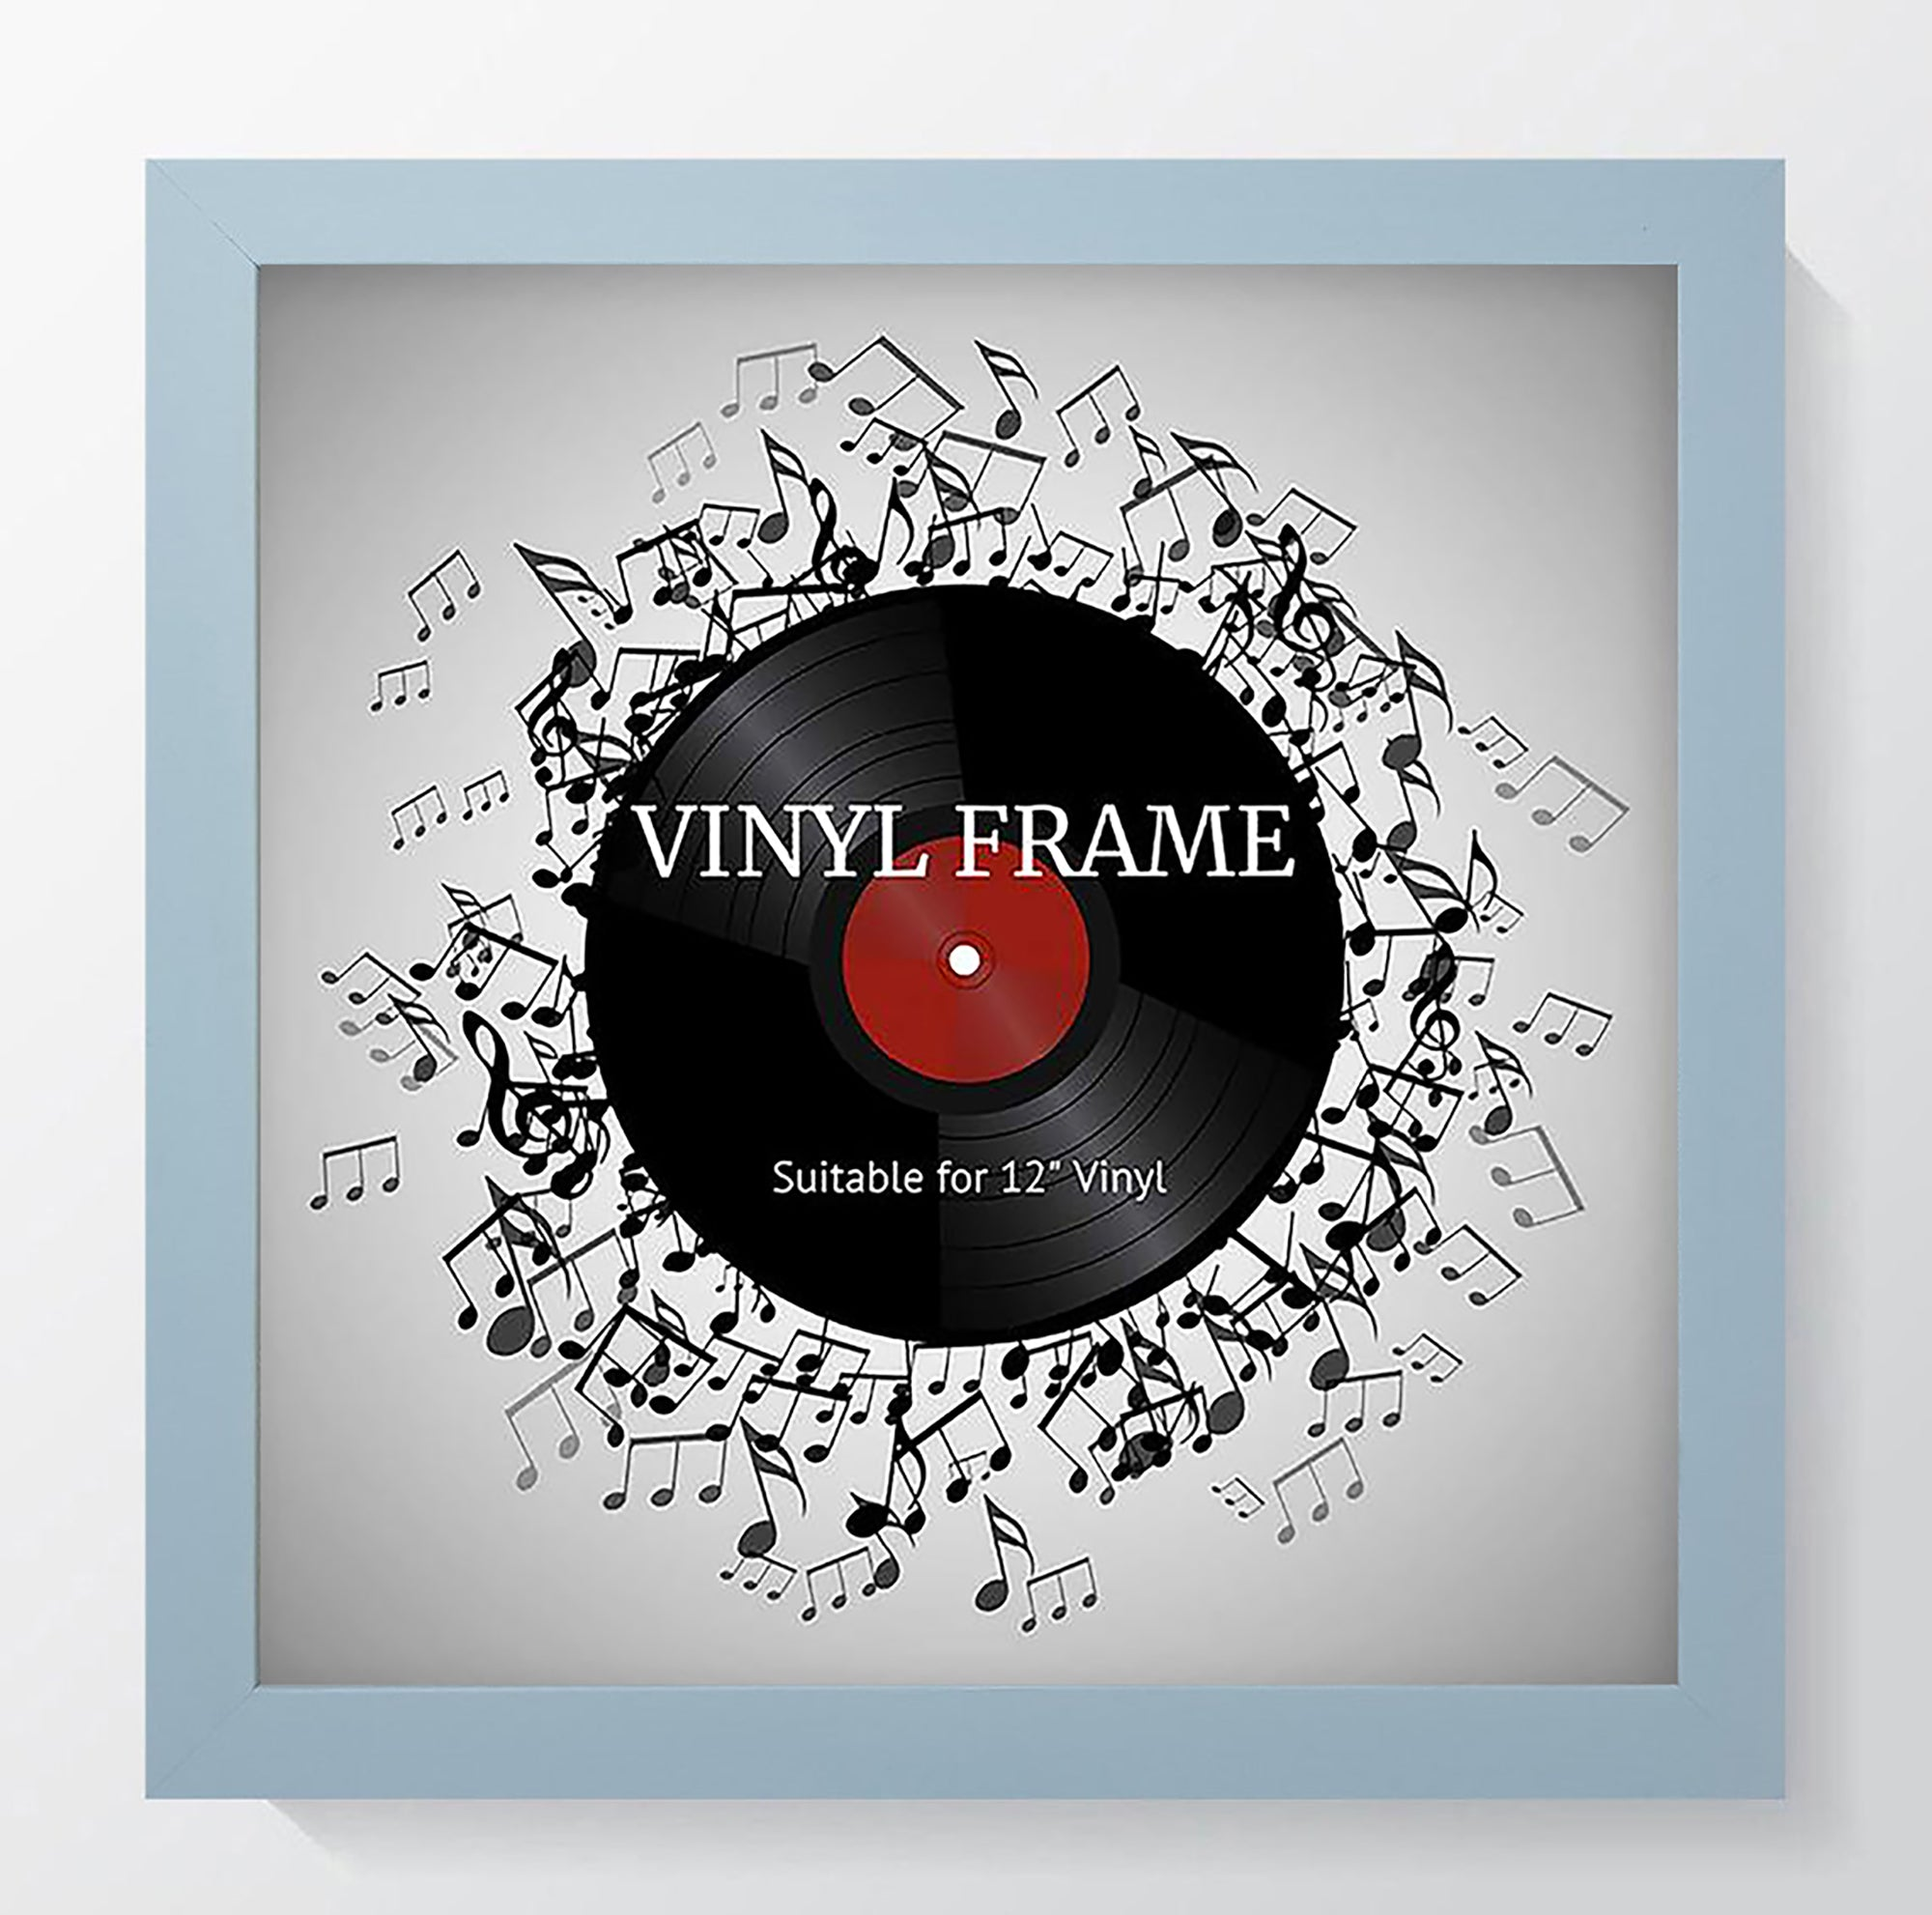 "Oxford Light Blue Photo Frame Suitable for a 12"" Vinyl Album"